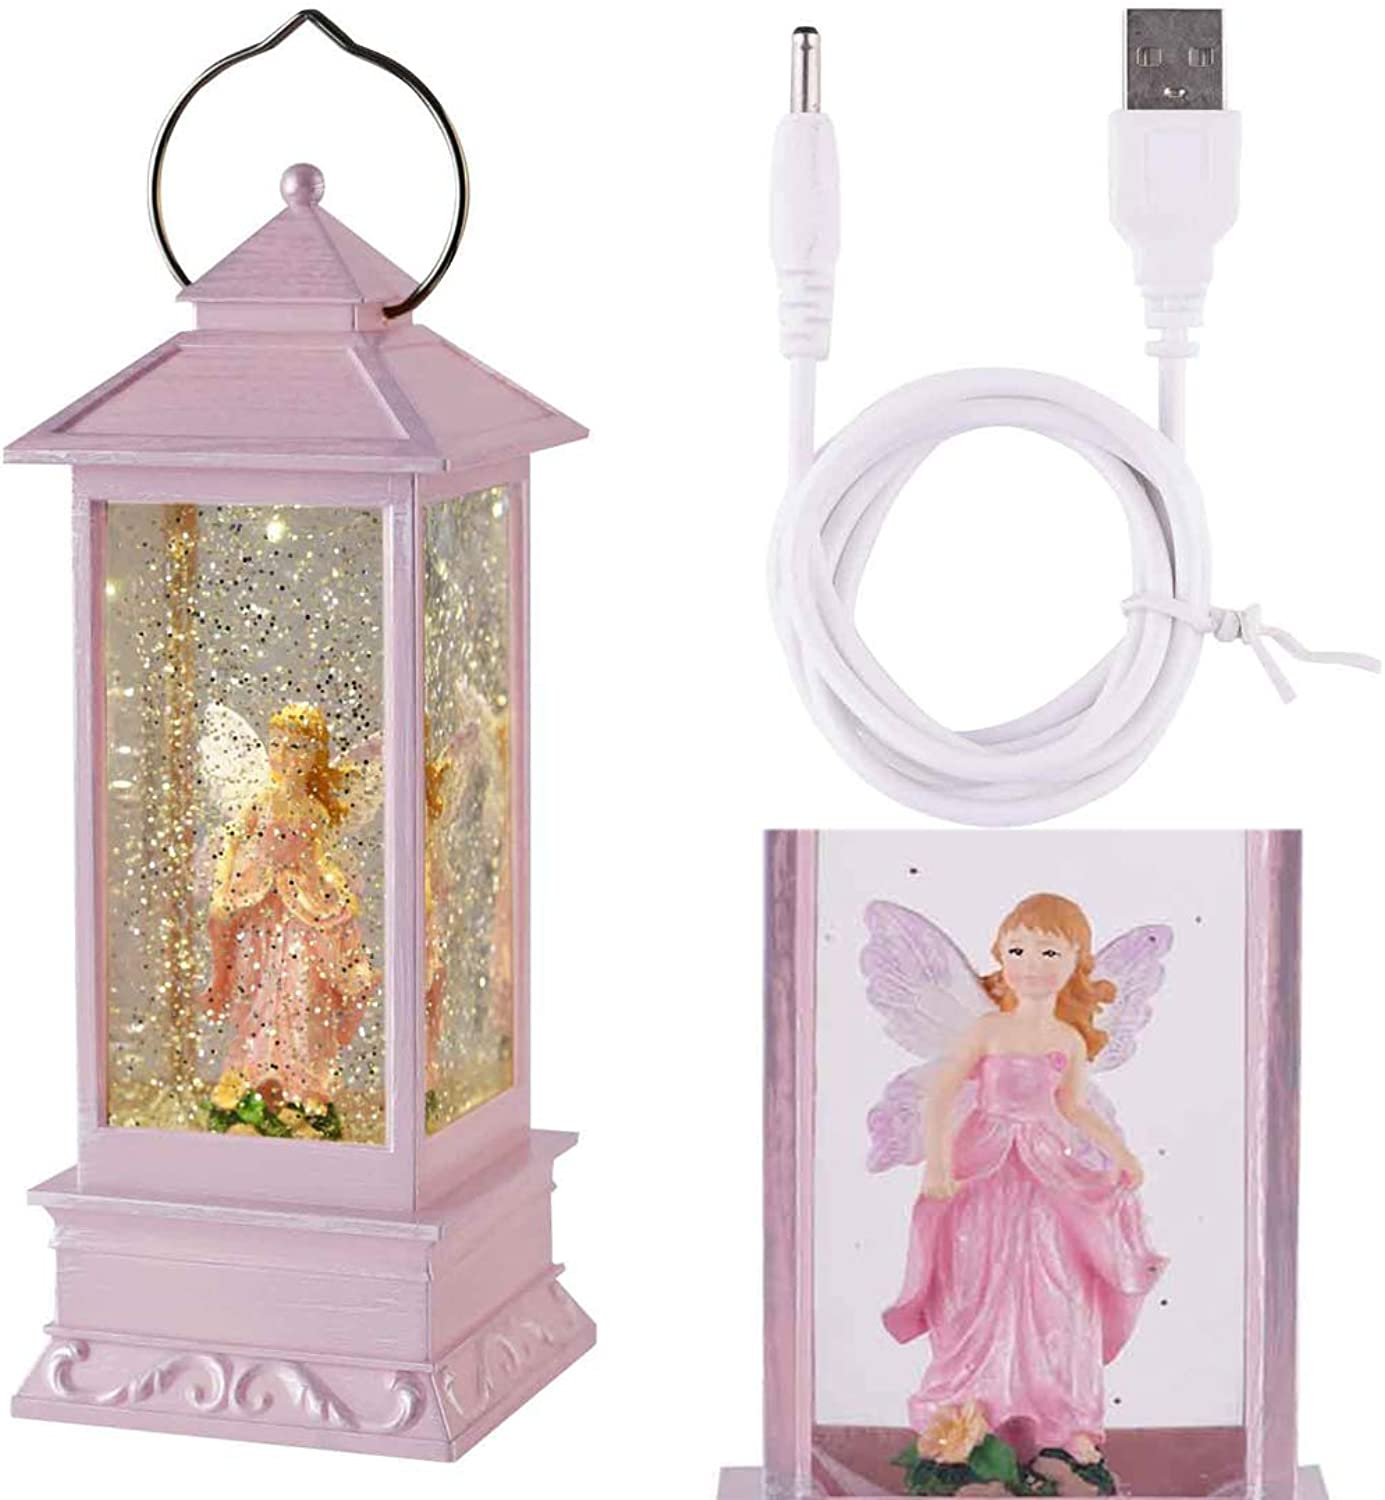 Snow Globe Lantern, Angel Snow Globe with Water Glittering Swirling Battery Operated-USB Cord Powered for Valentine's Day, Birthday, Home Party Decoration